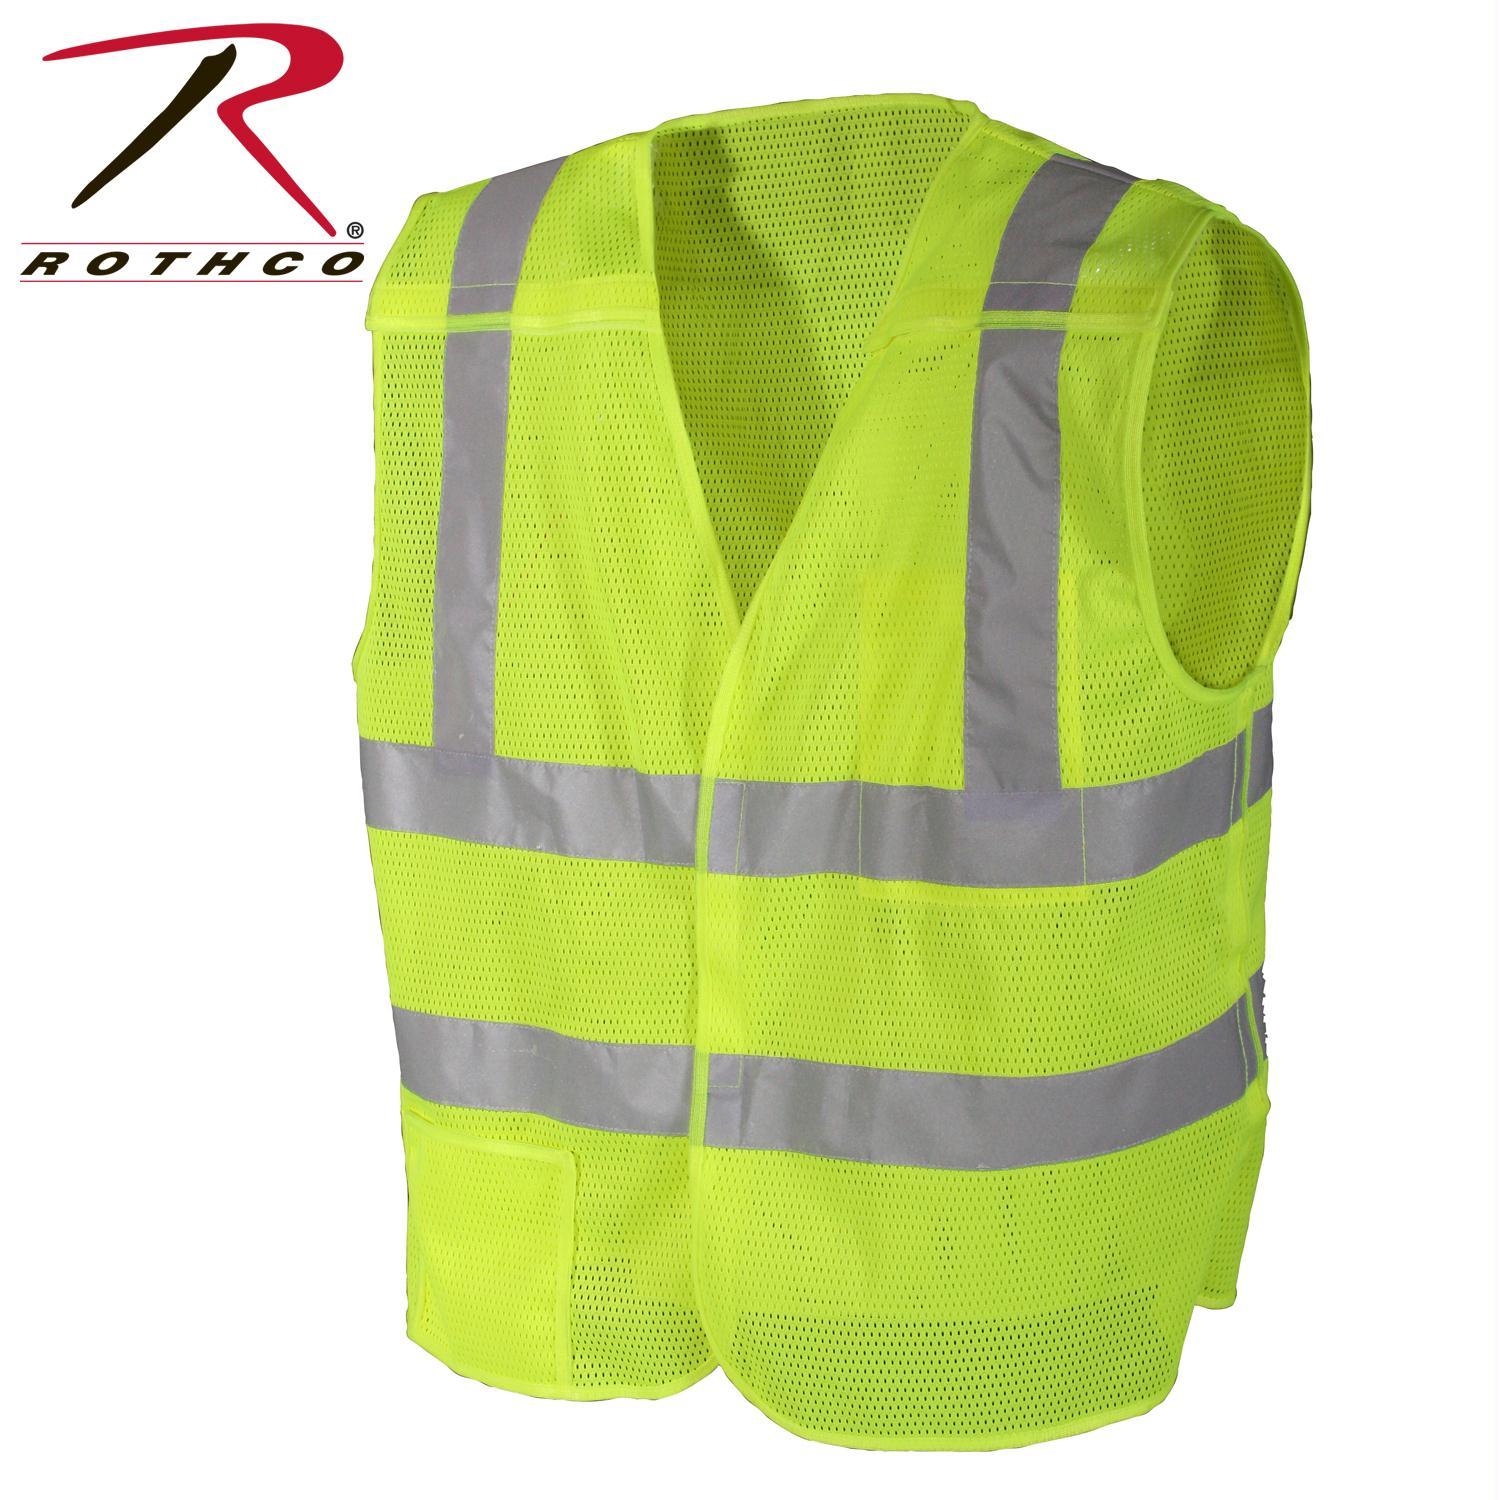 Rothco 5-point Breakaway Vest - Neon Yellow / Oversized